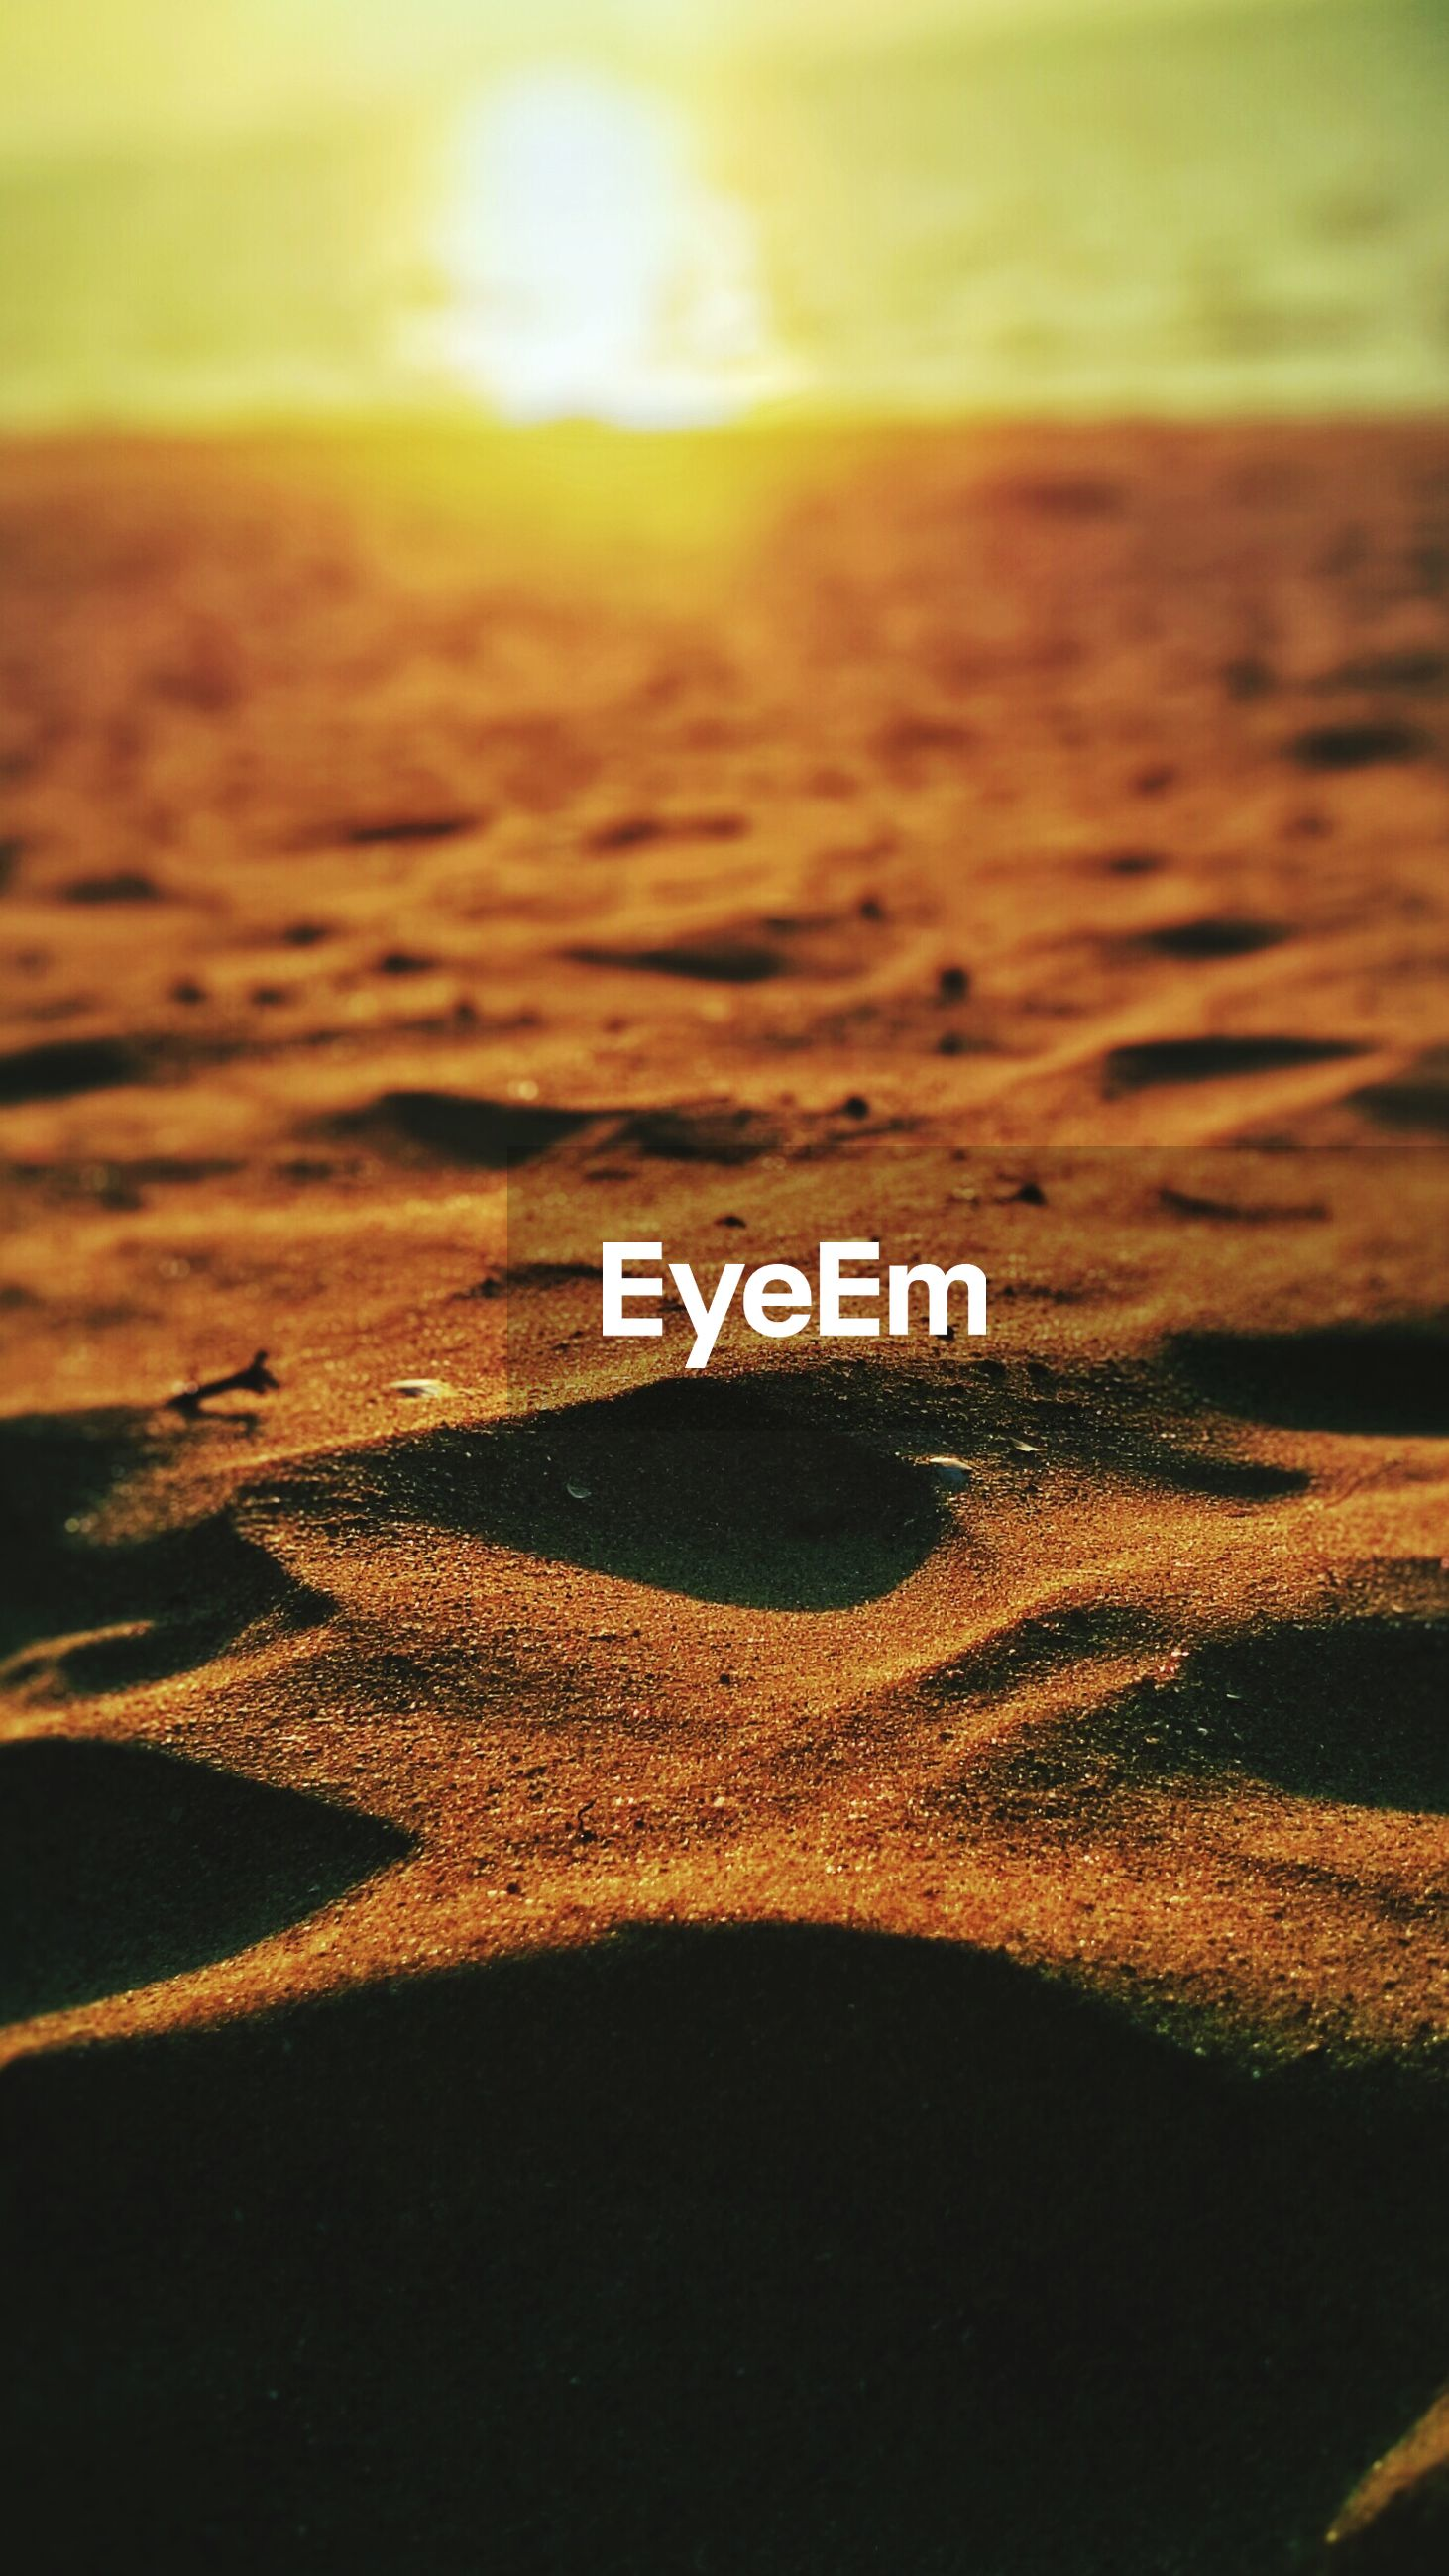 sunset, orange color, scenics, sunlight, tranquility, beauty in nature, landscape, tranquil scene, sun, yellow, nature, sand, no people, sky, outdoors, idyllic, close-up, aerial view, beach, selective focus